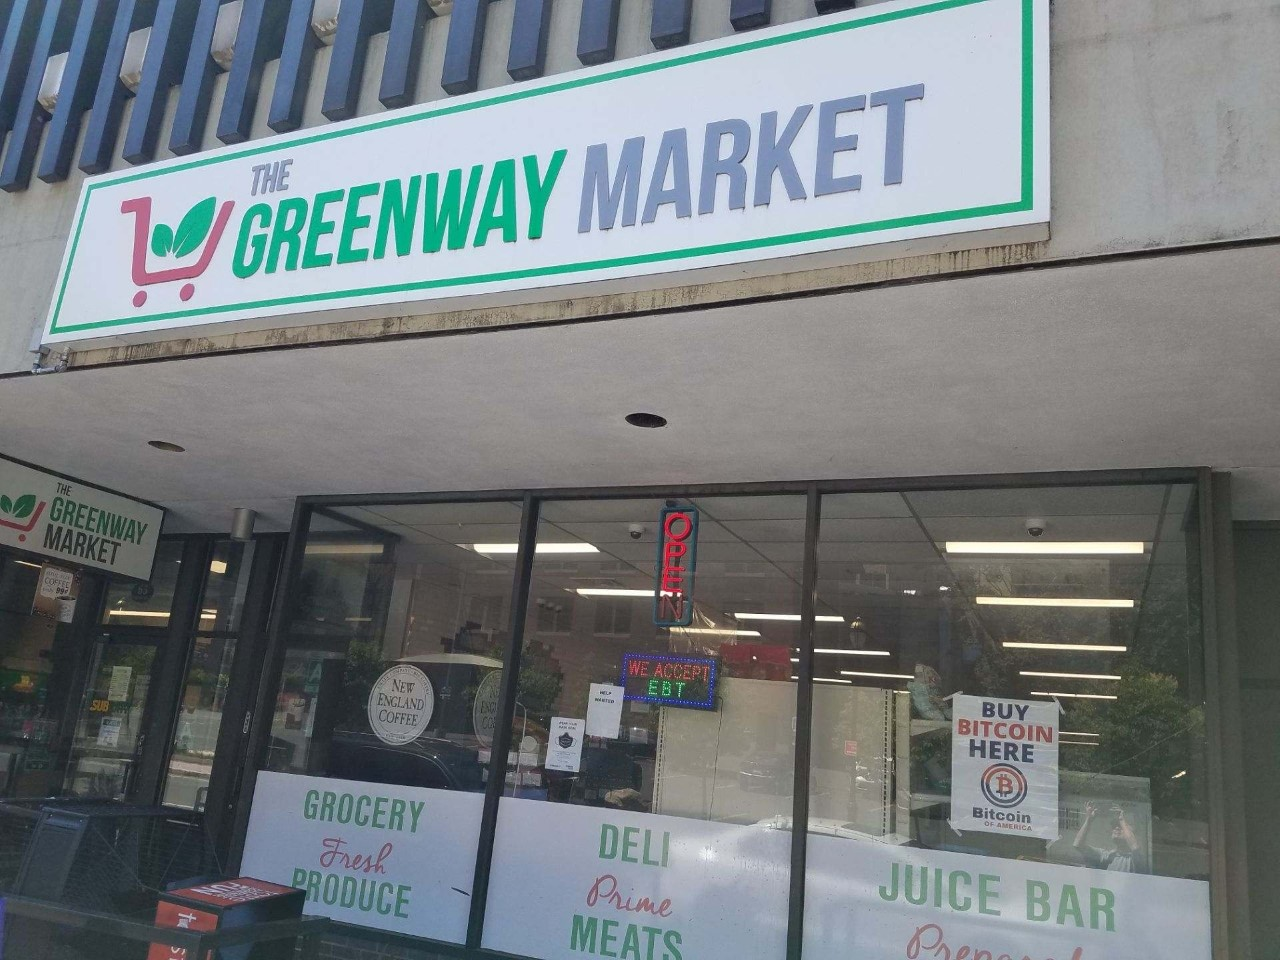 The Greenway Market